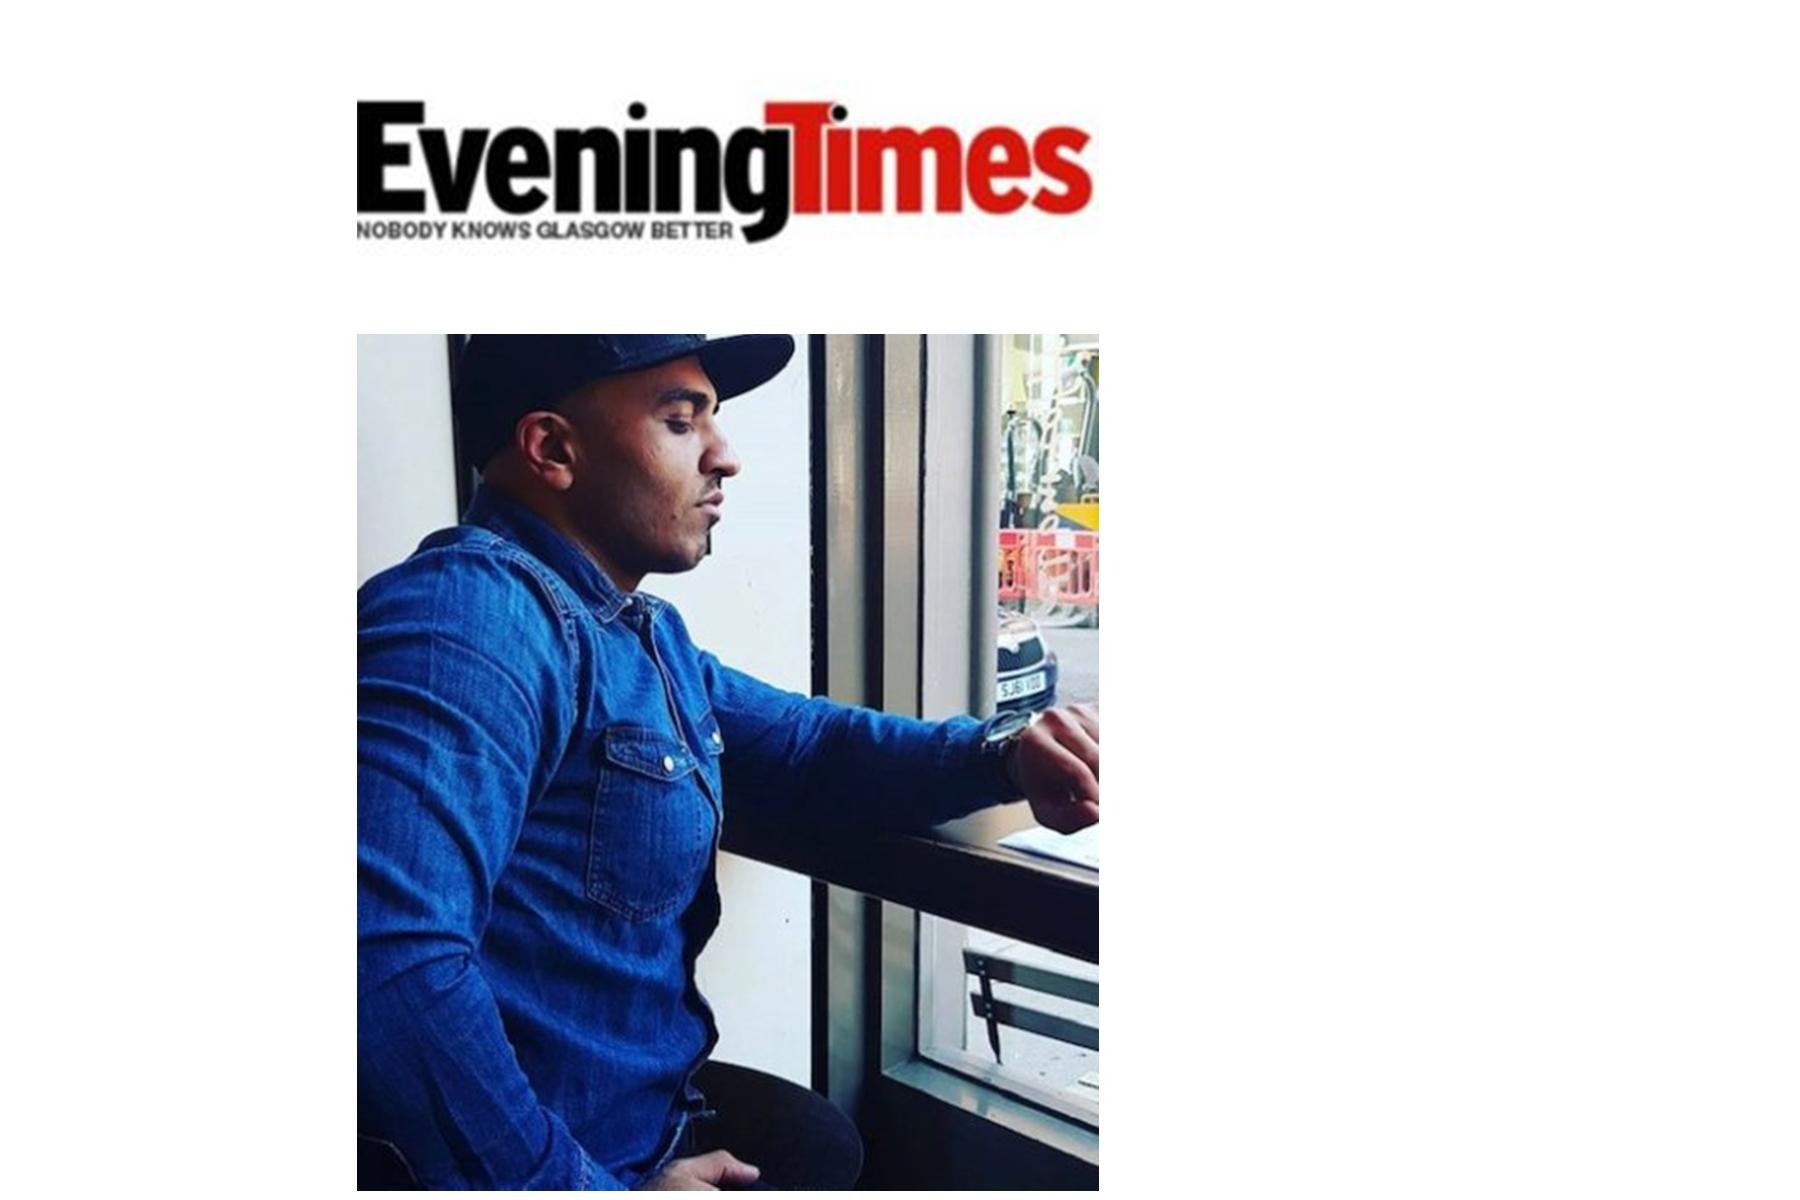 """Outrage As """"Evening Times Online"""" Is Exposed Publishing Filthy Lies About Unsuspecting Dating Coach Agame And Women In Glasgow"""